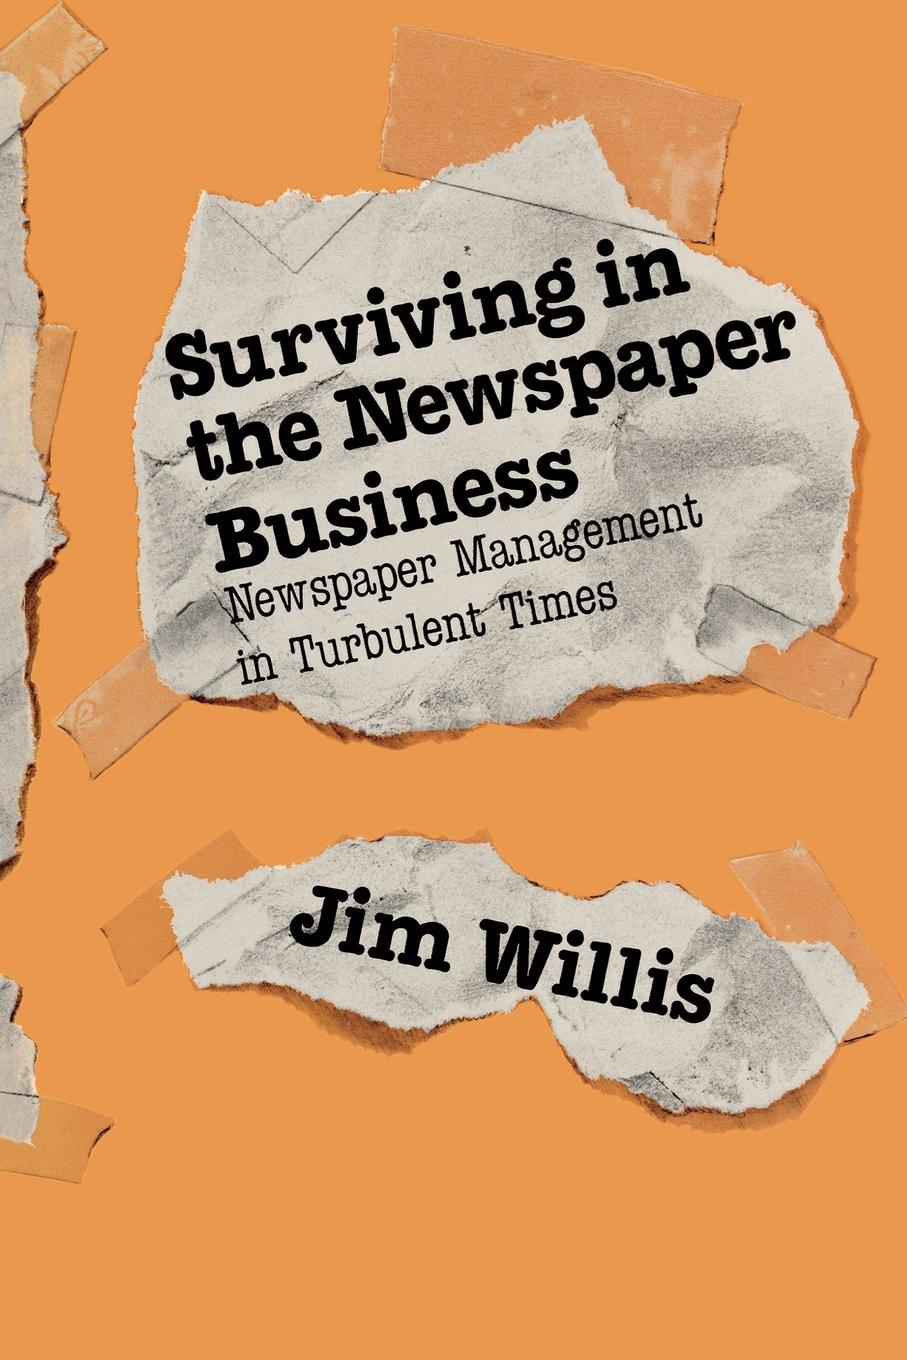 William James Willis, Jim Willis Surviving in the Newspaper Business. Newspaper Management in Turbulent Times newspaper burlap coaster